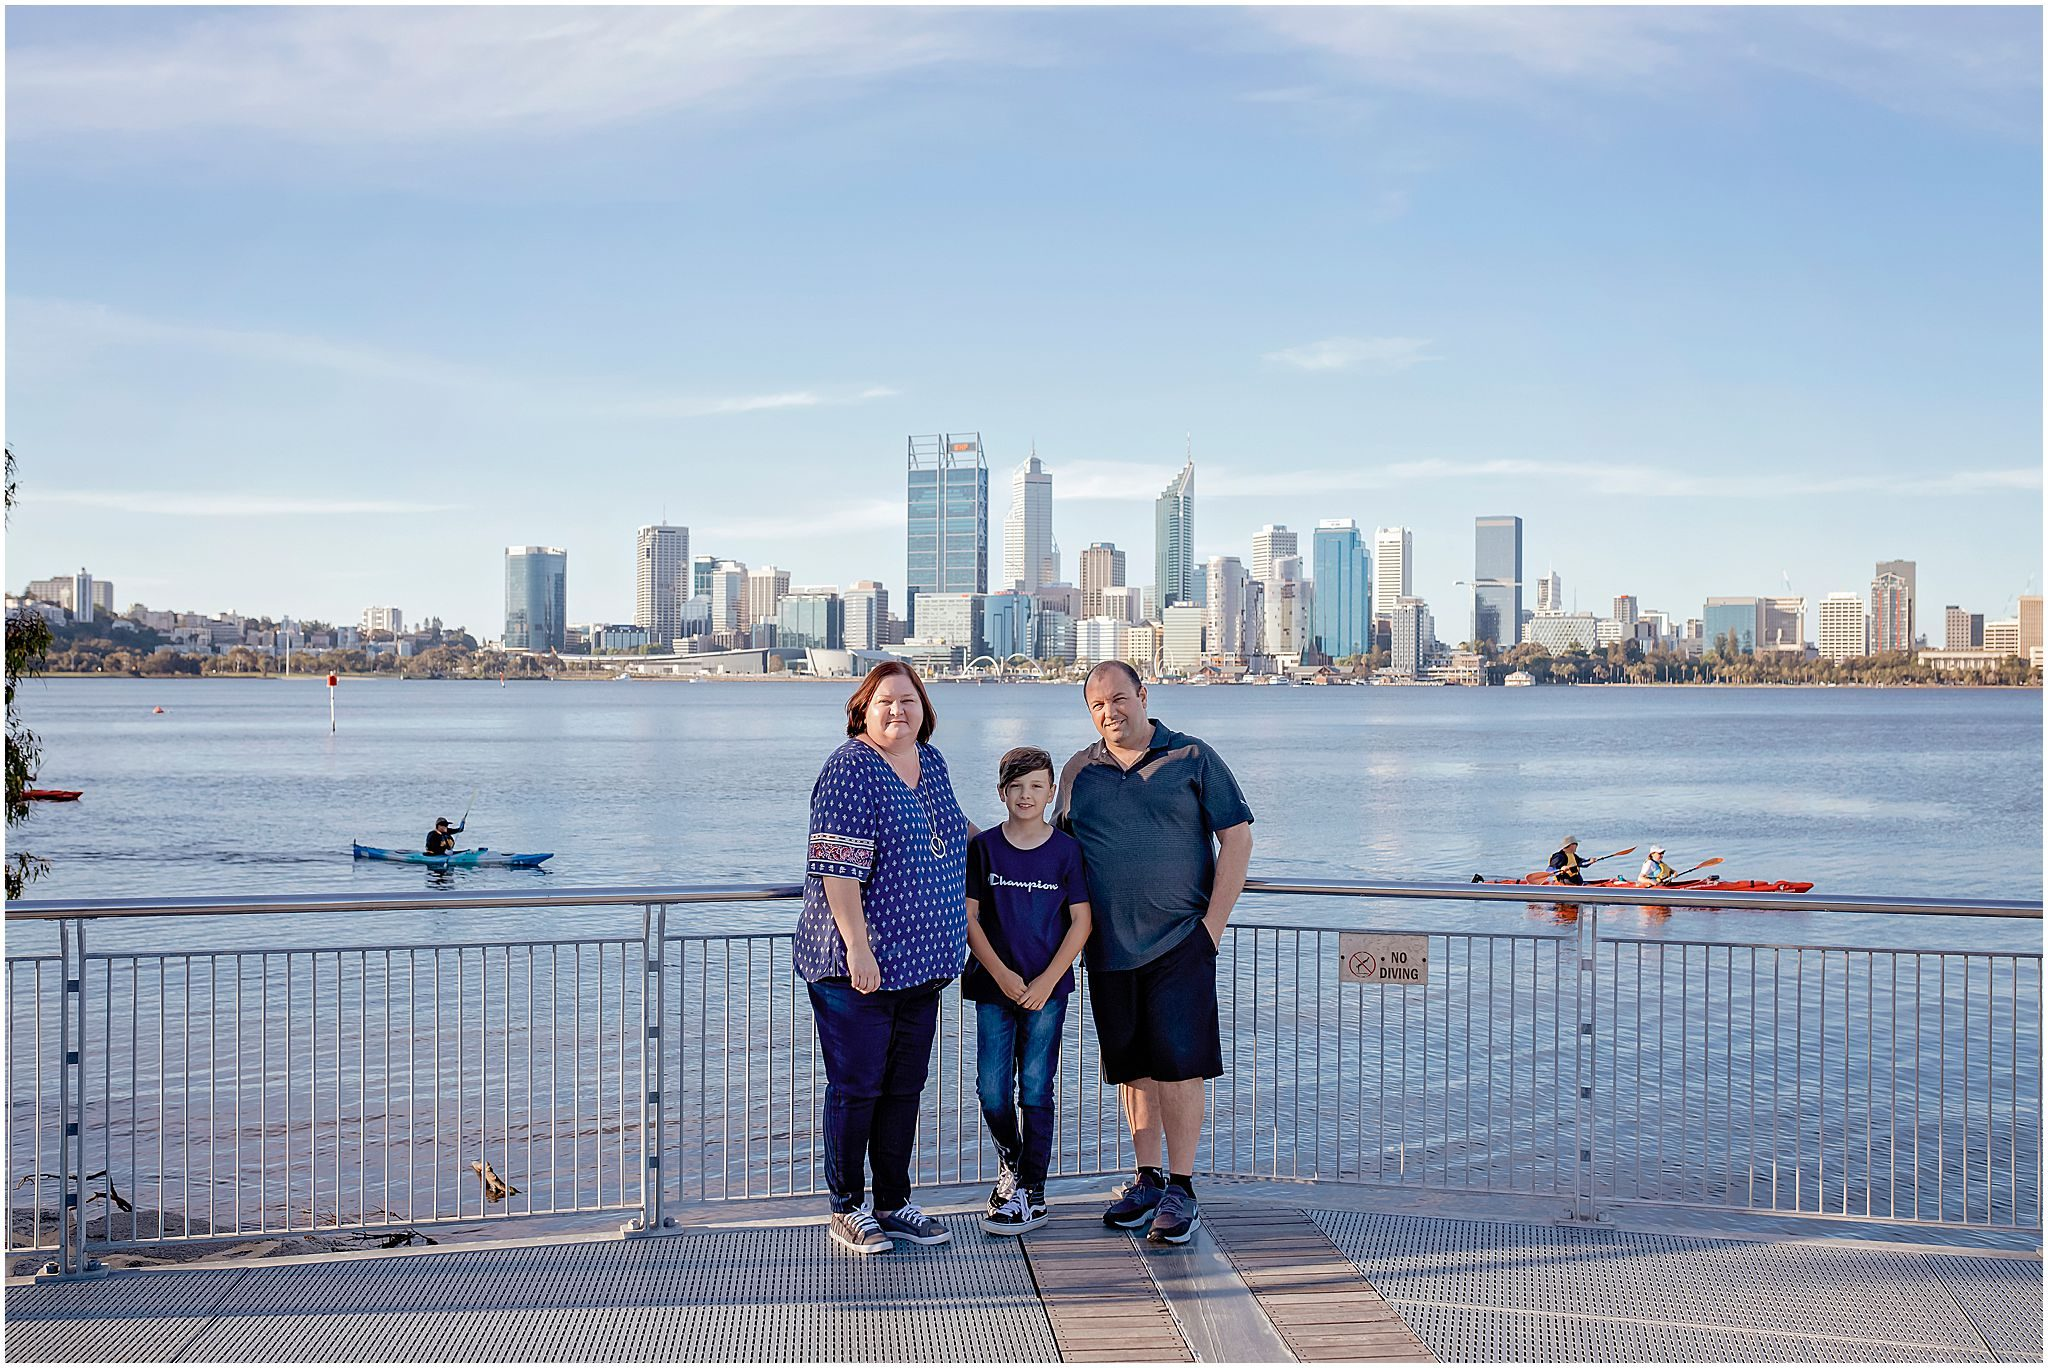 Family photography at South Perth foreshore by WhiteJasmin Photography